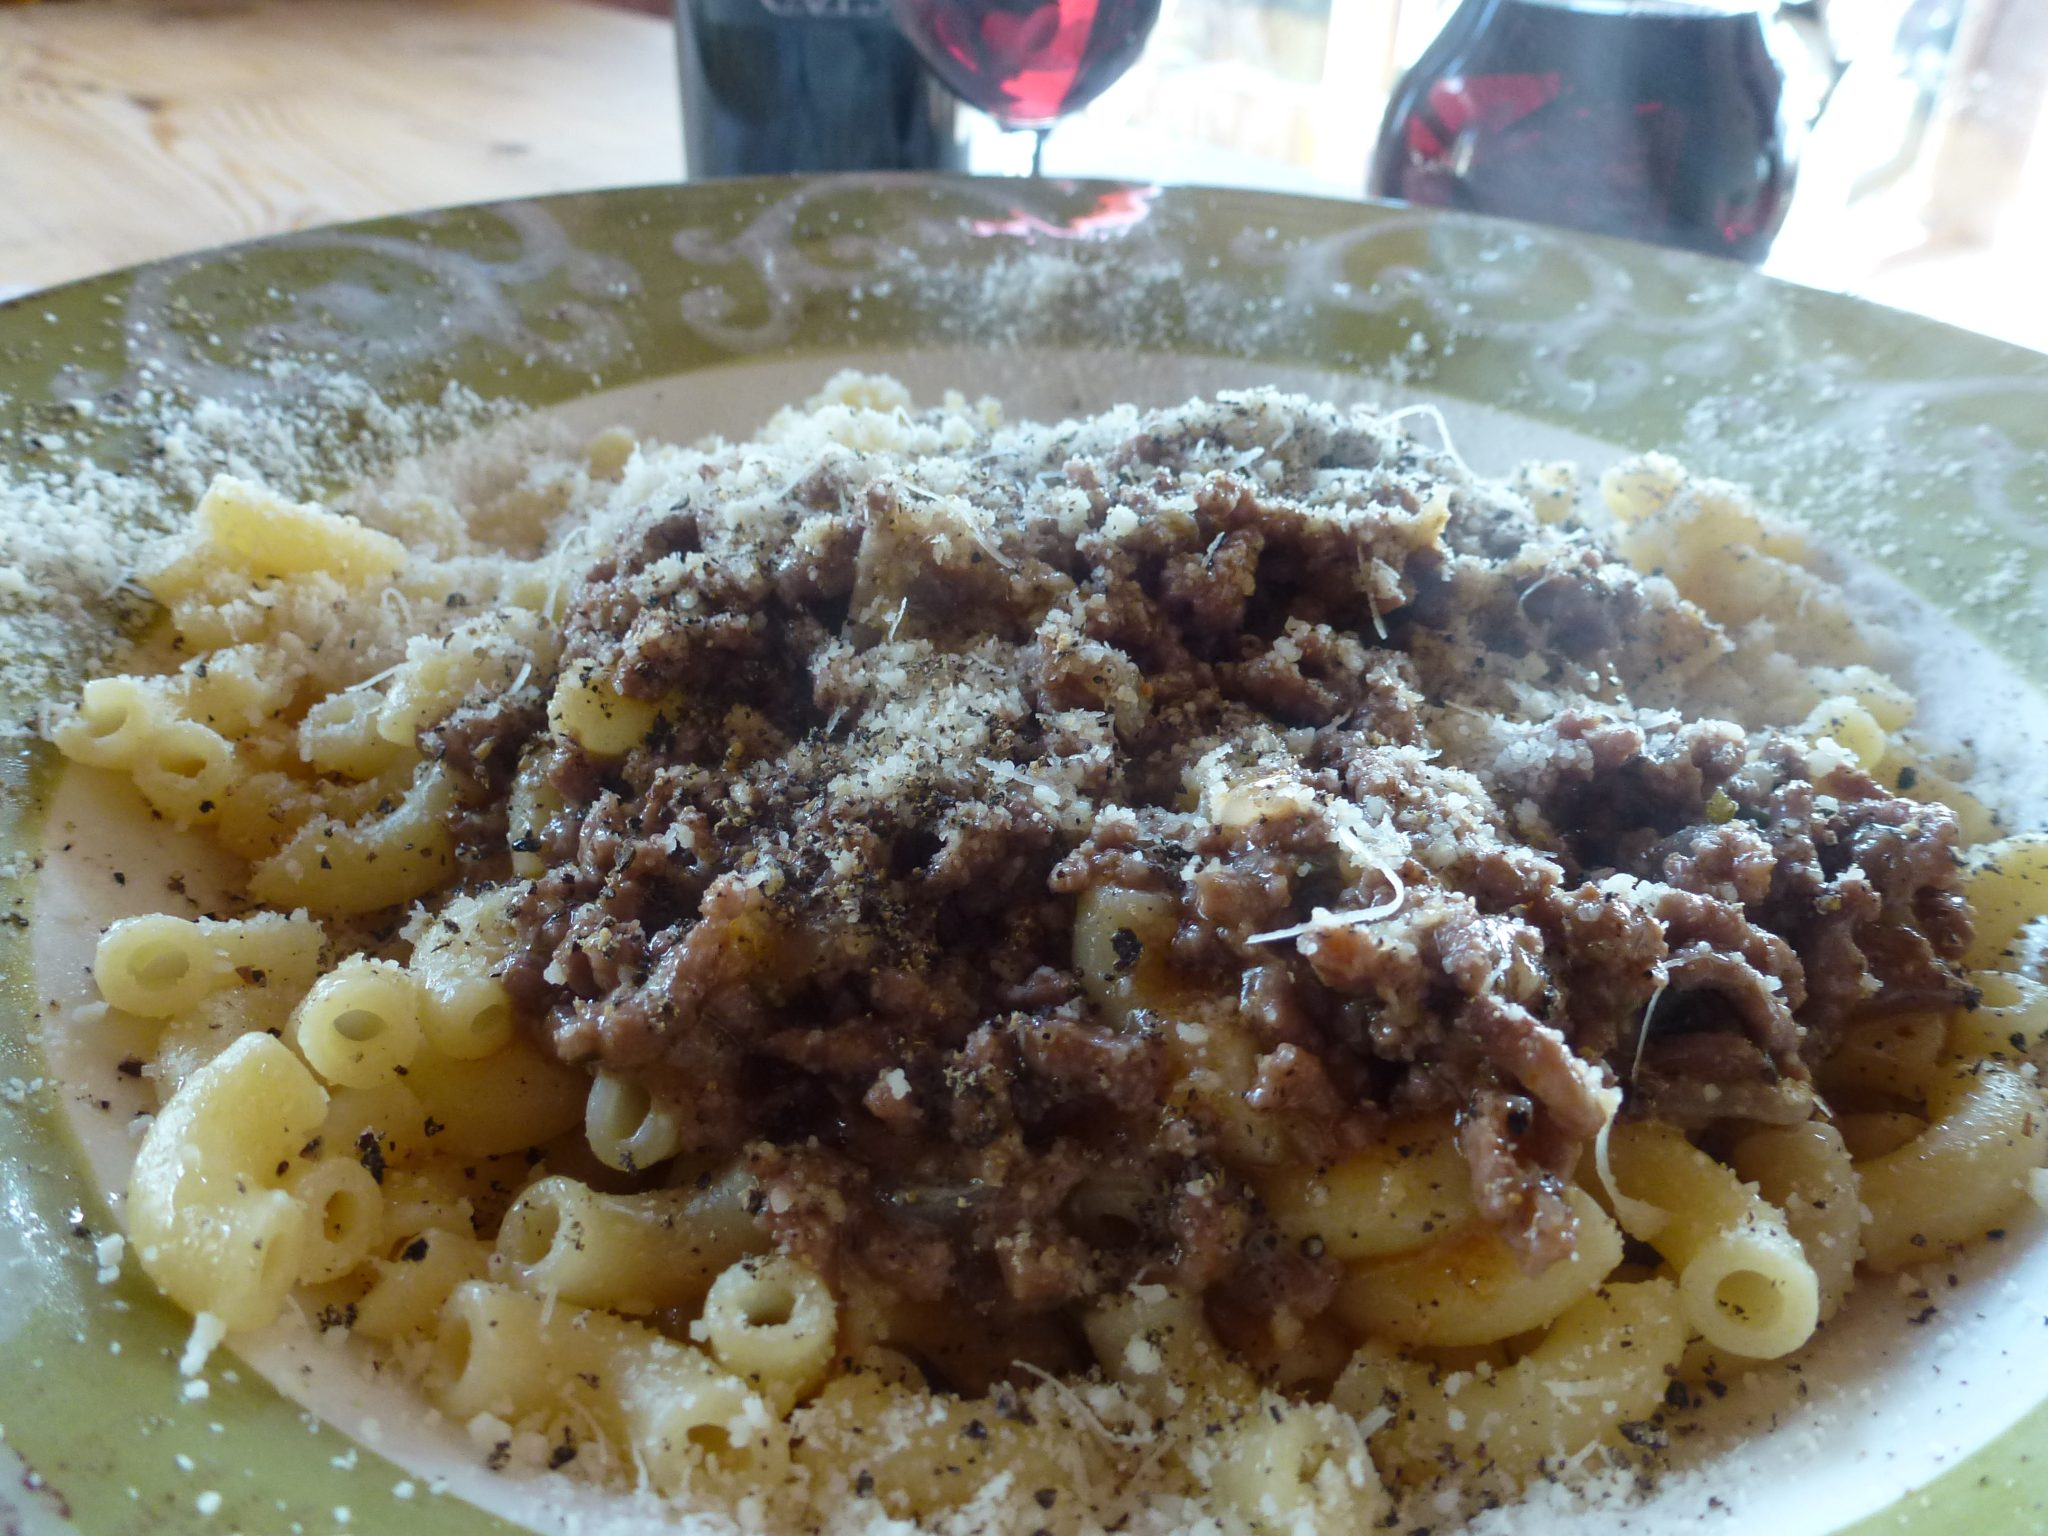 Ground Meat with Elbow Pasta